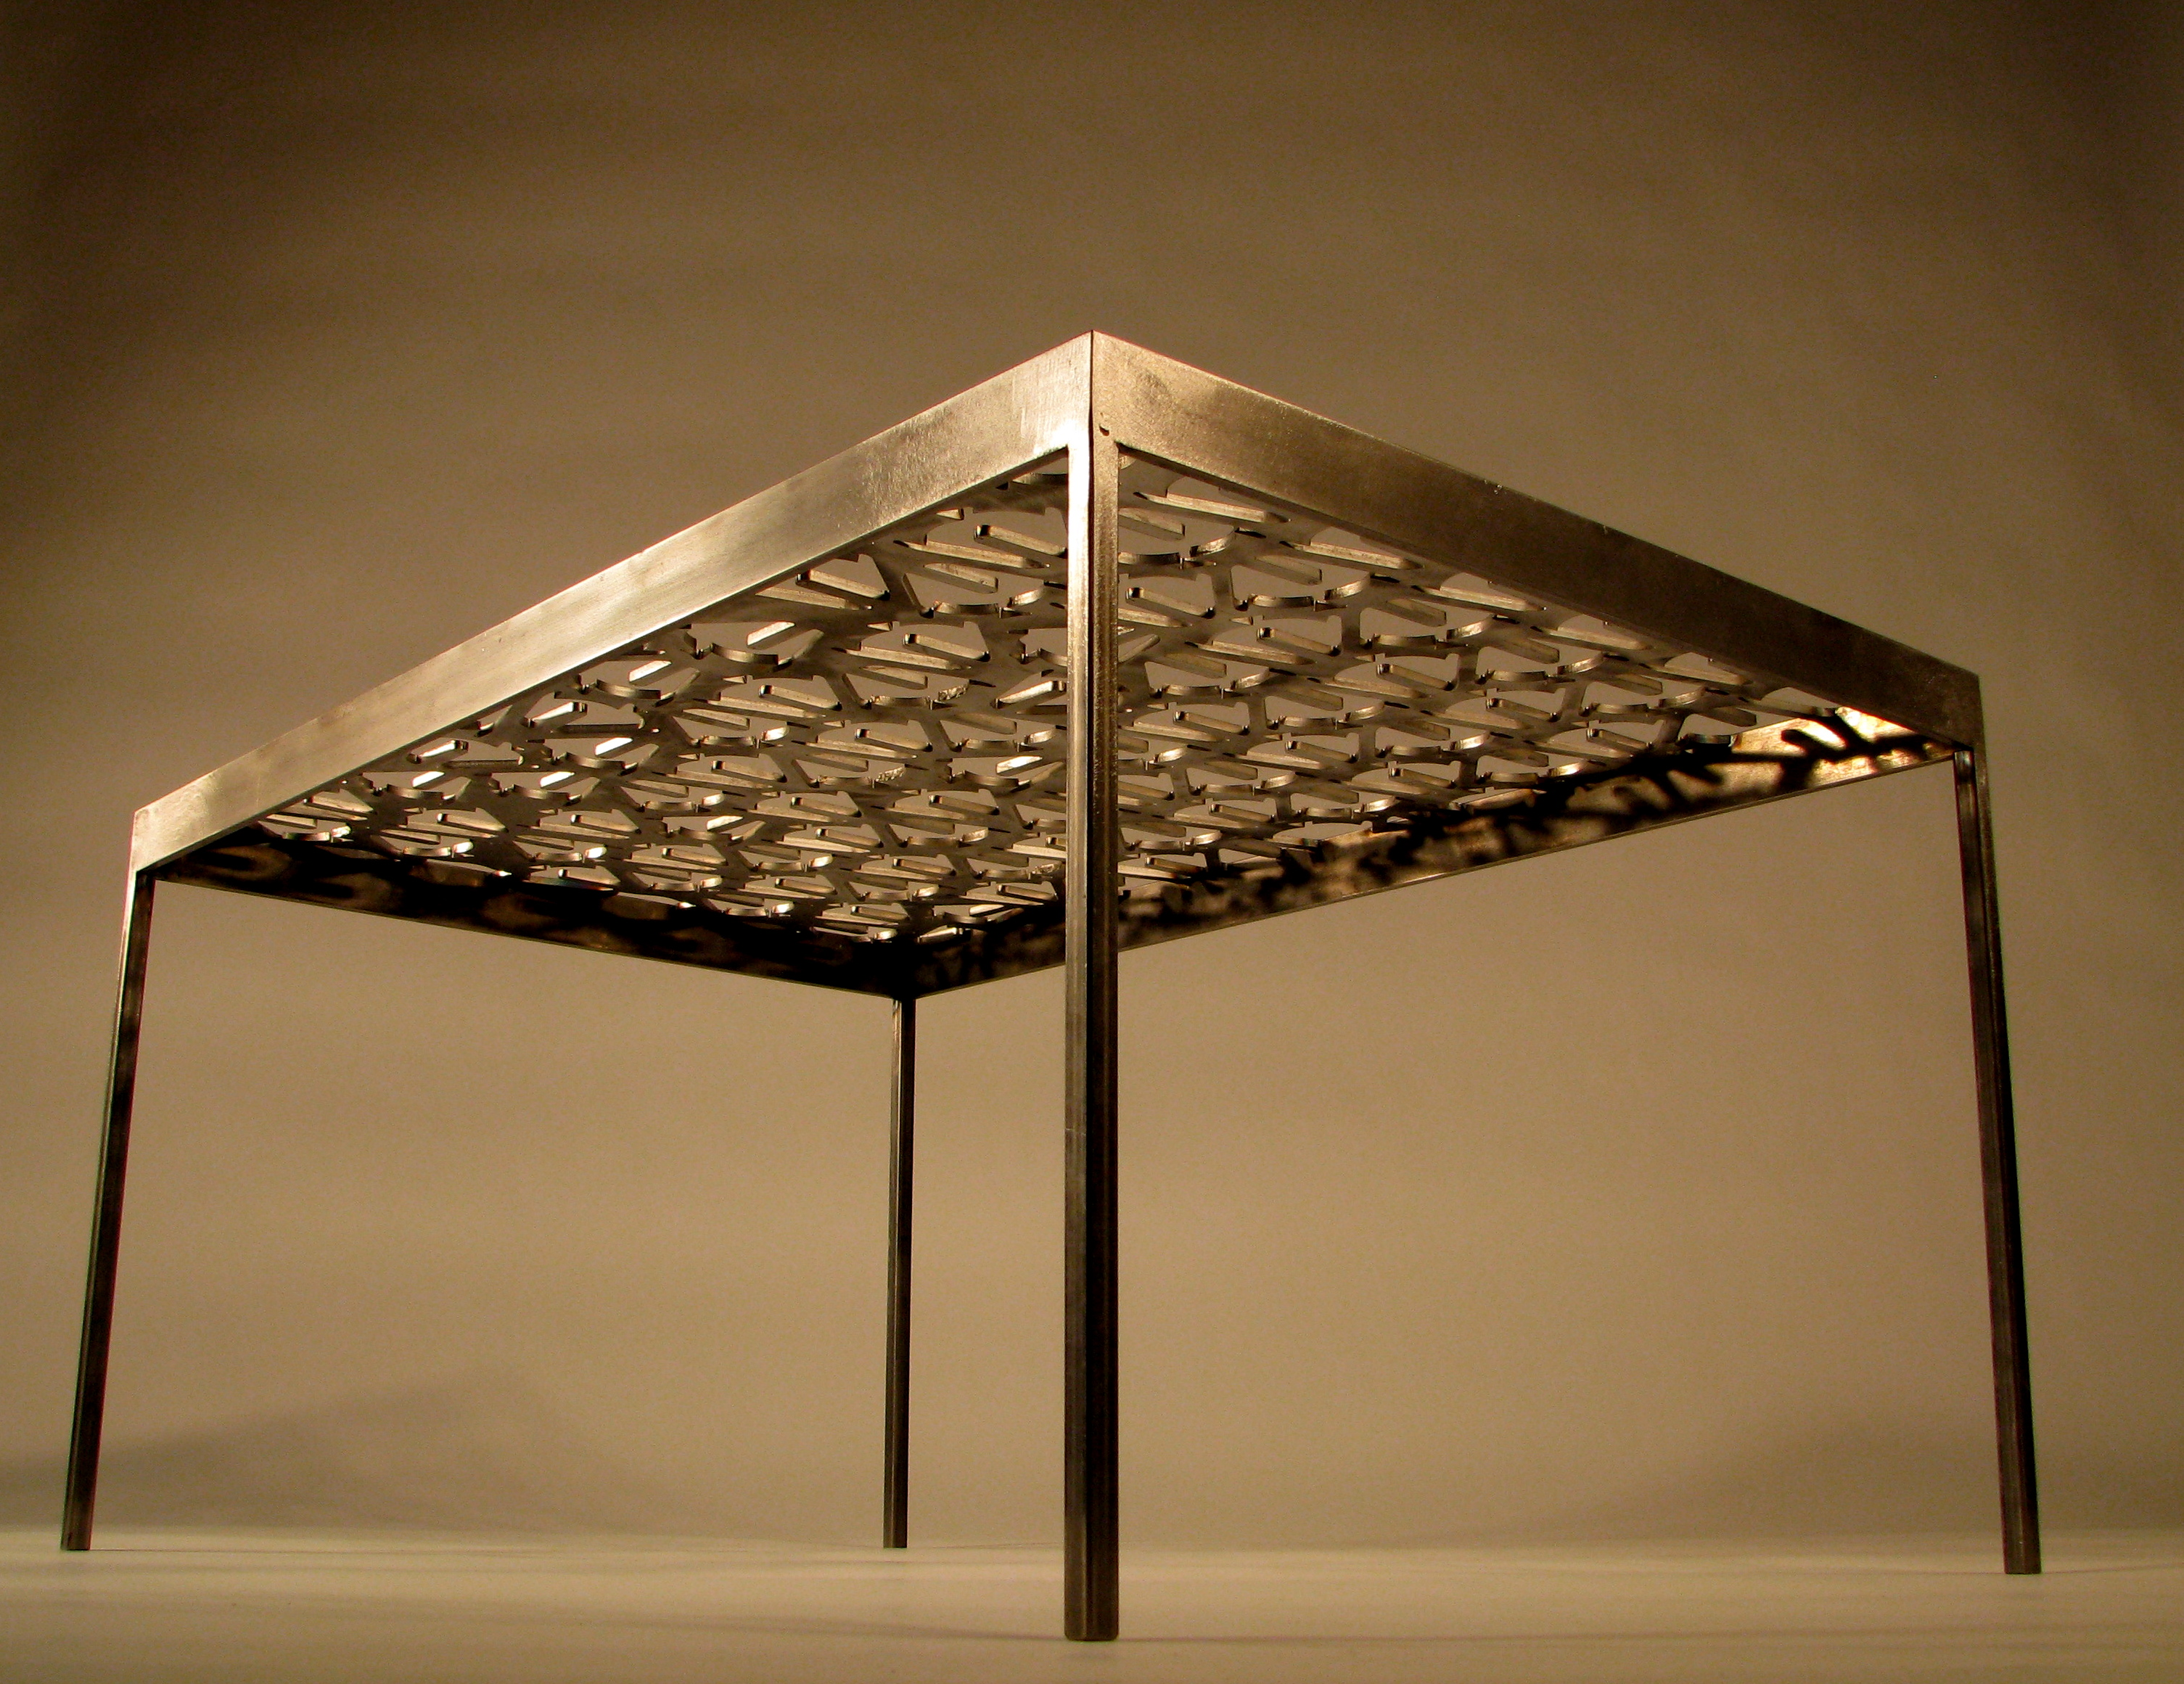 Coffee table archives tmrnyc total metal resource inc for Material design table